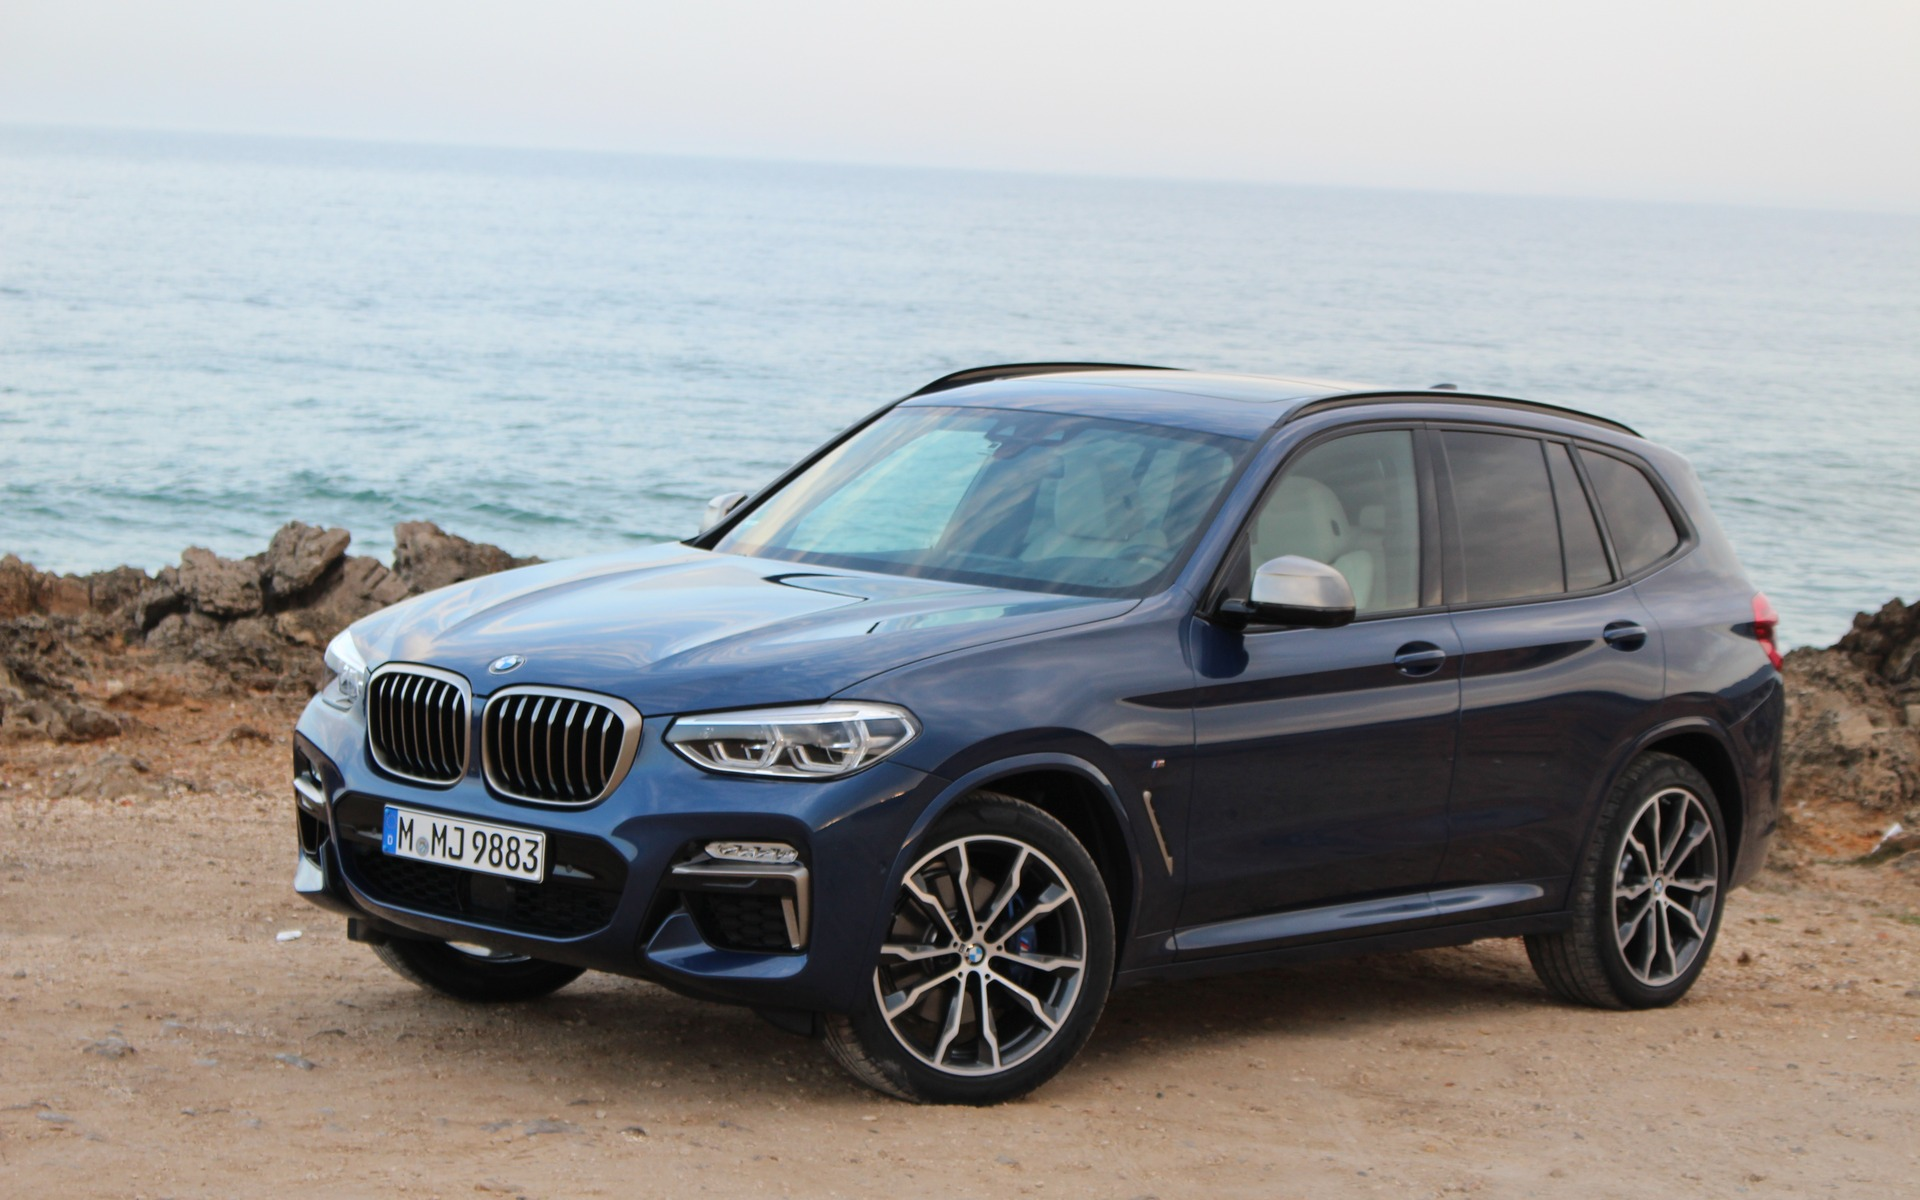 2018 Bmw X3 Improved In All The Right Places The Car Guide